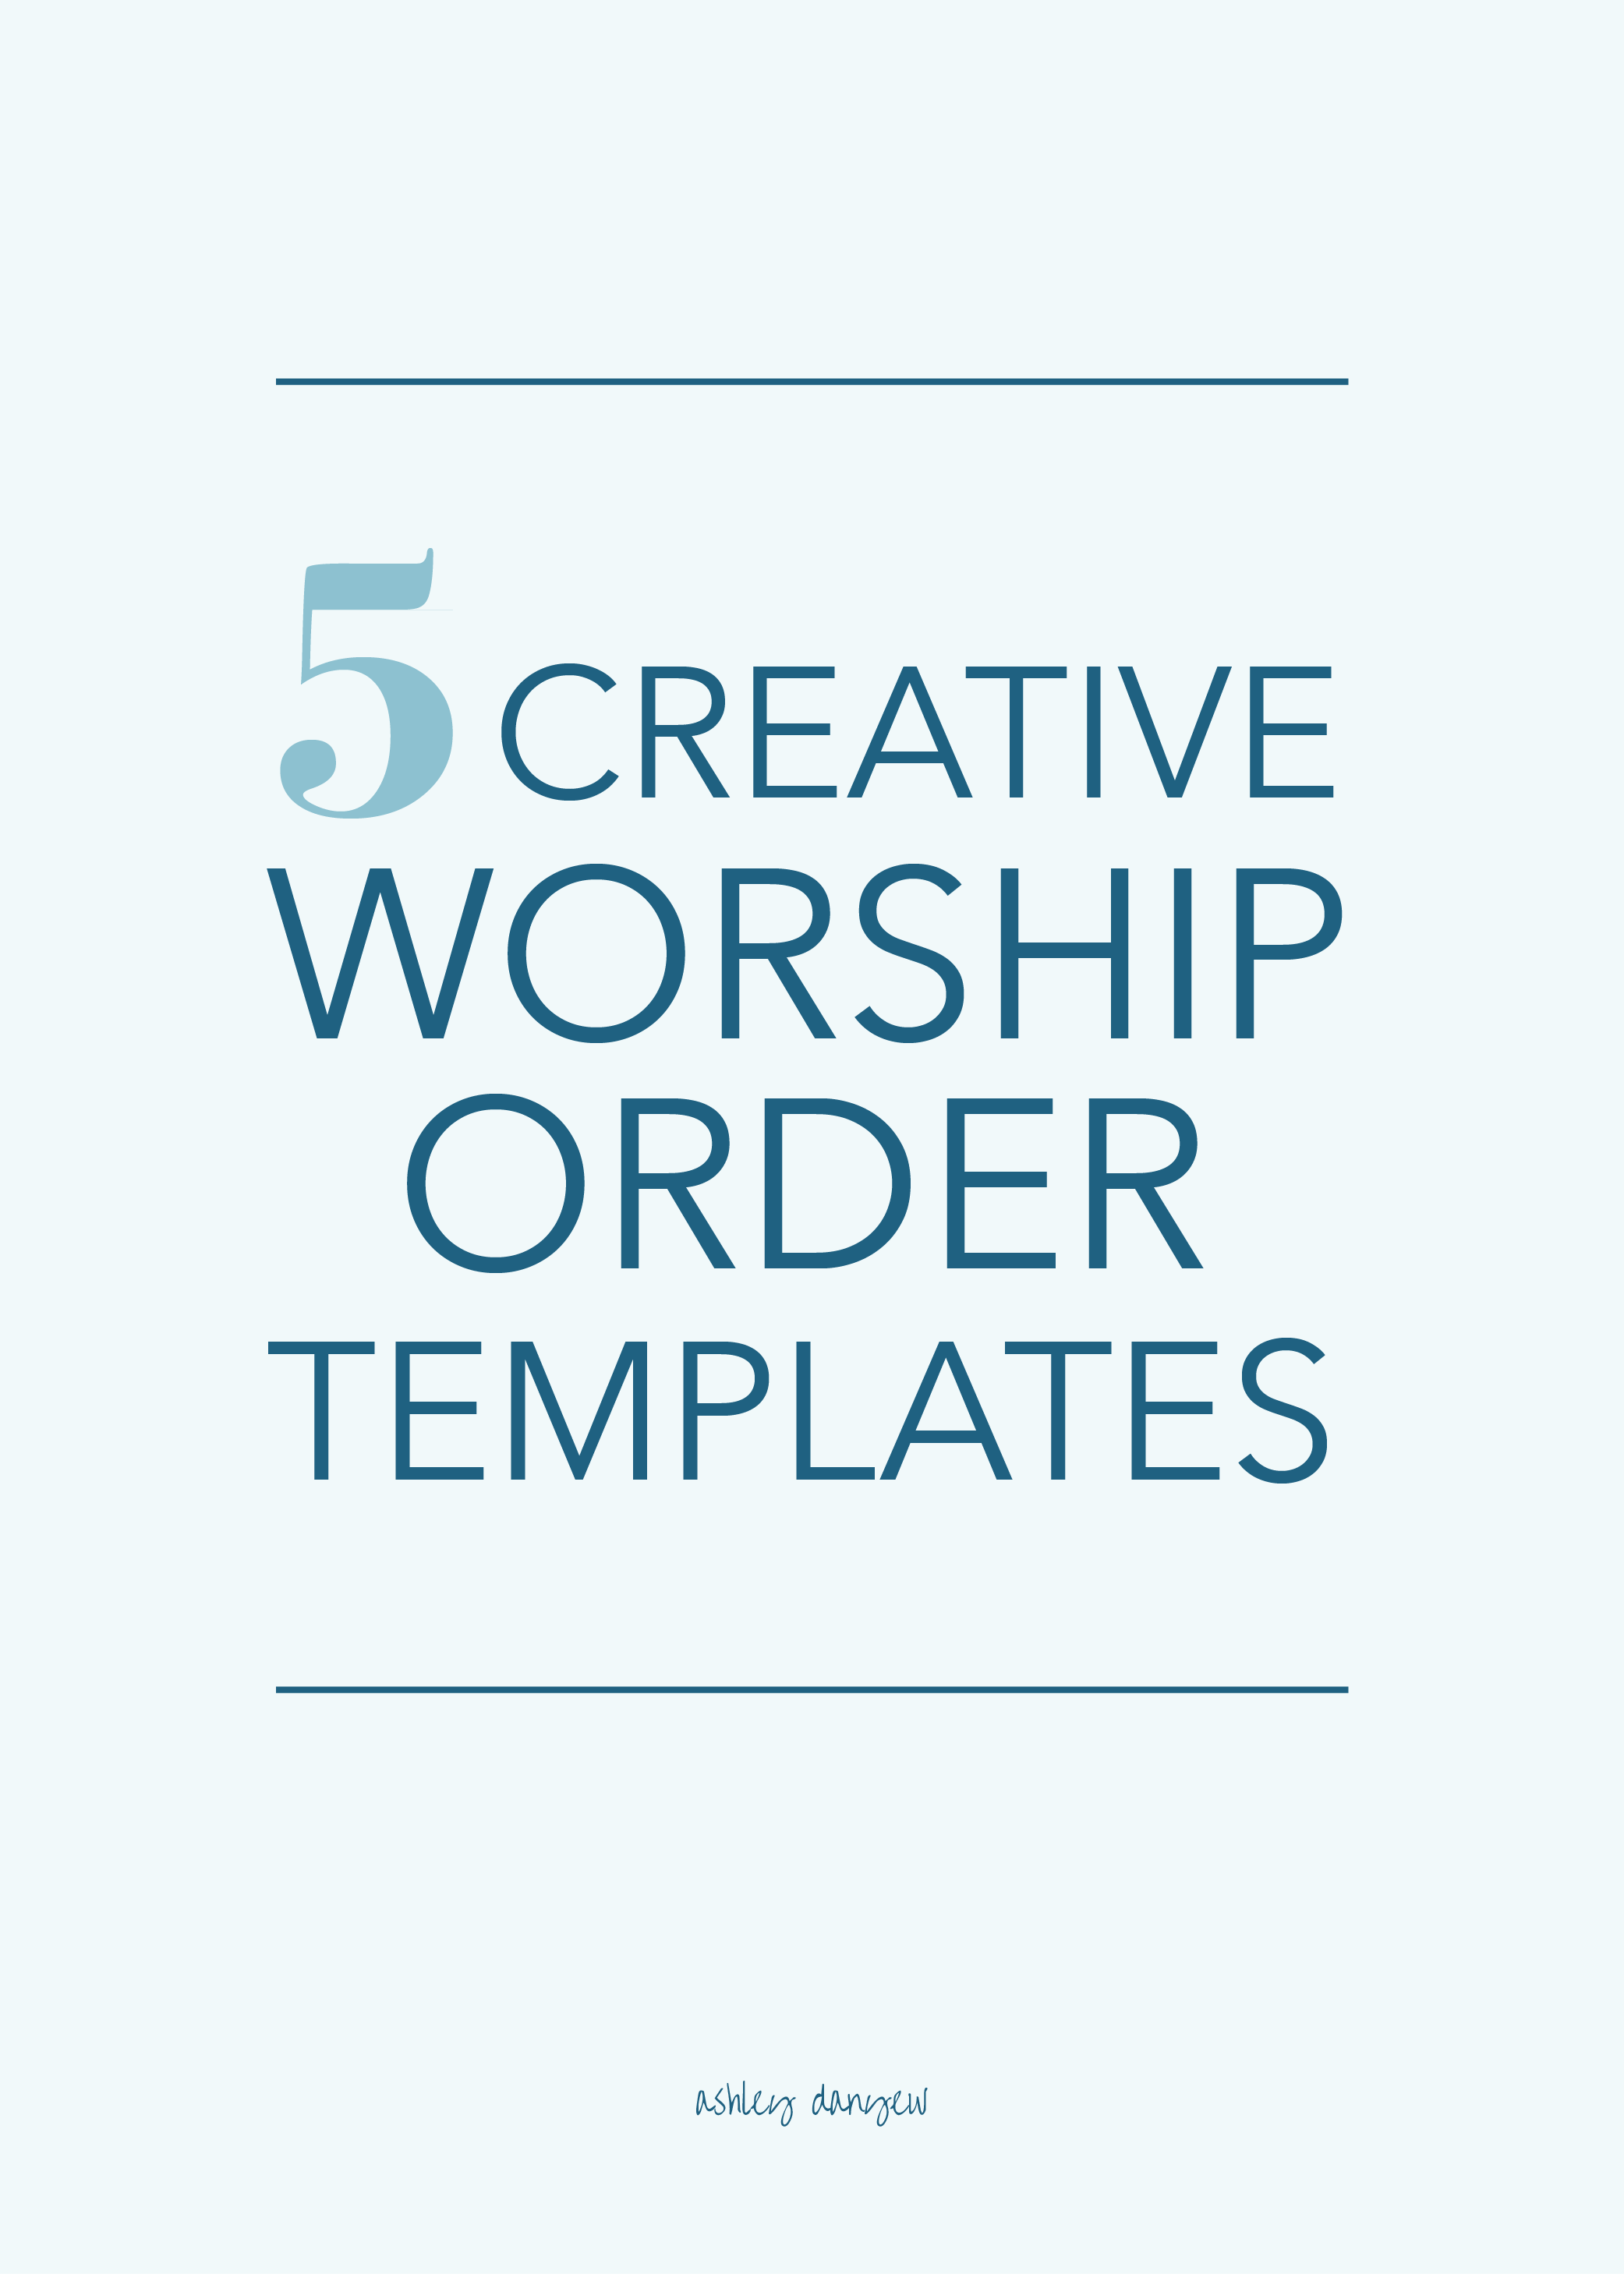 5 creative worship order templates | ashley danyew